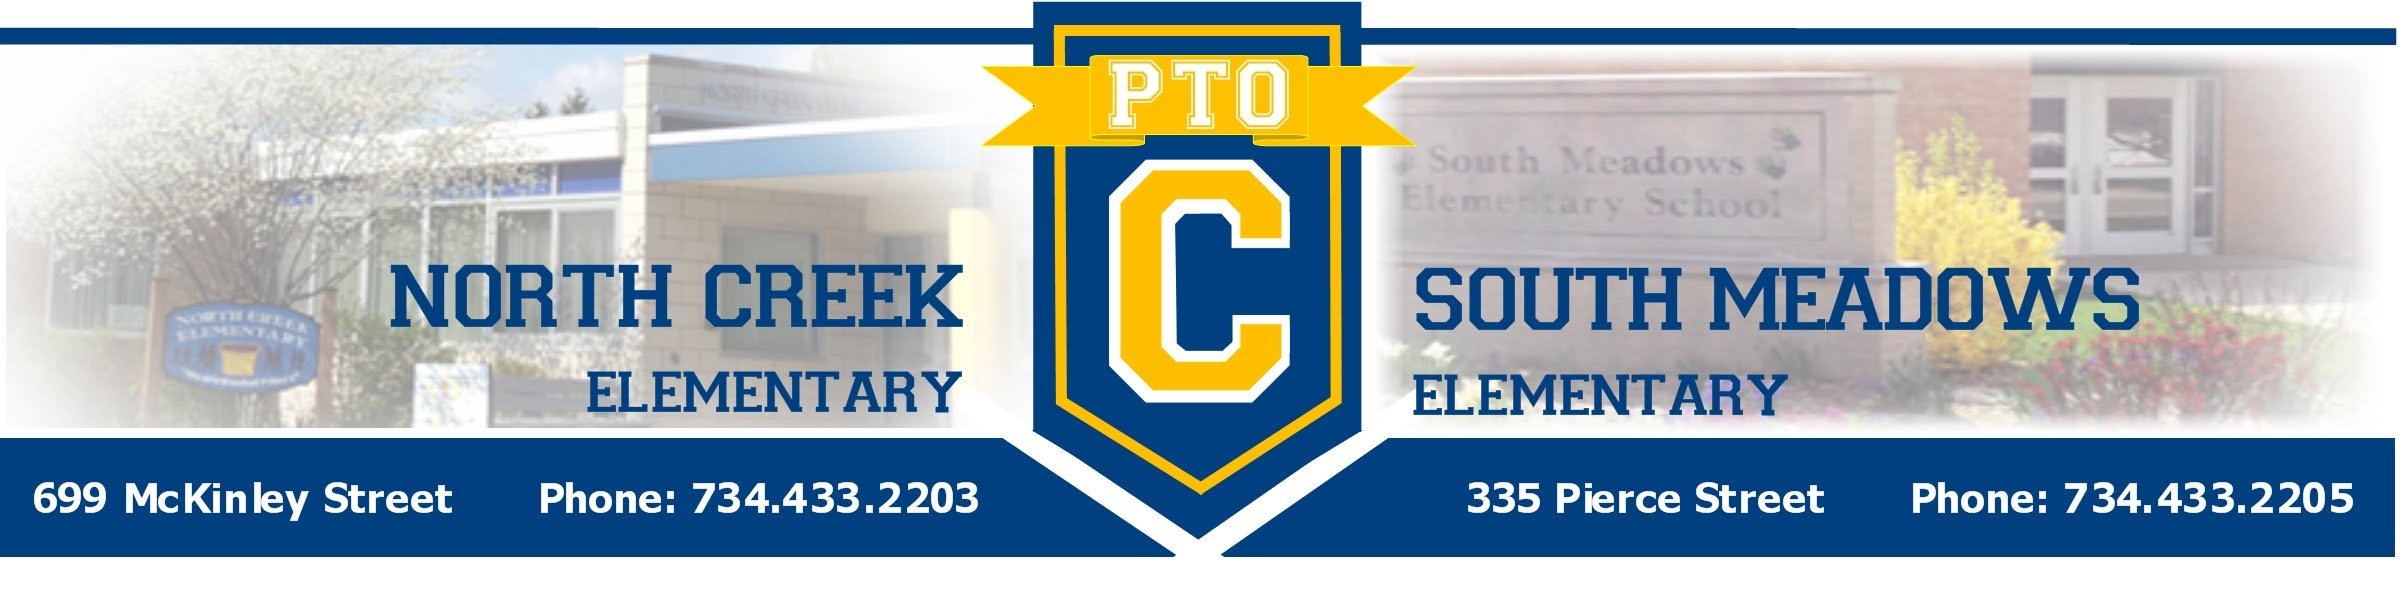 PTO banner; North Creek Elementary, 699 McKinley Street, Phone: 7344332203; South Meadows Elementary, 335 Pierce Street, Phone 7344332205